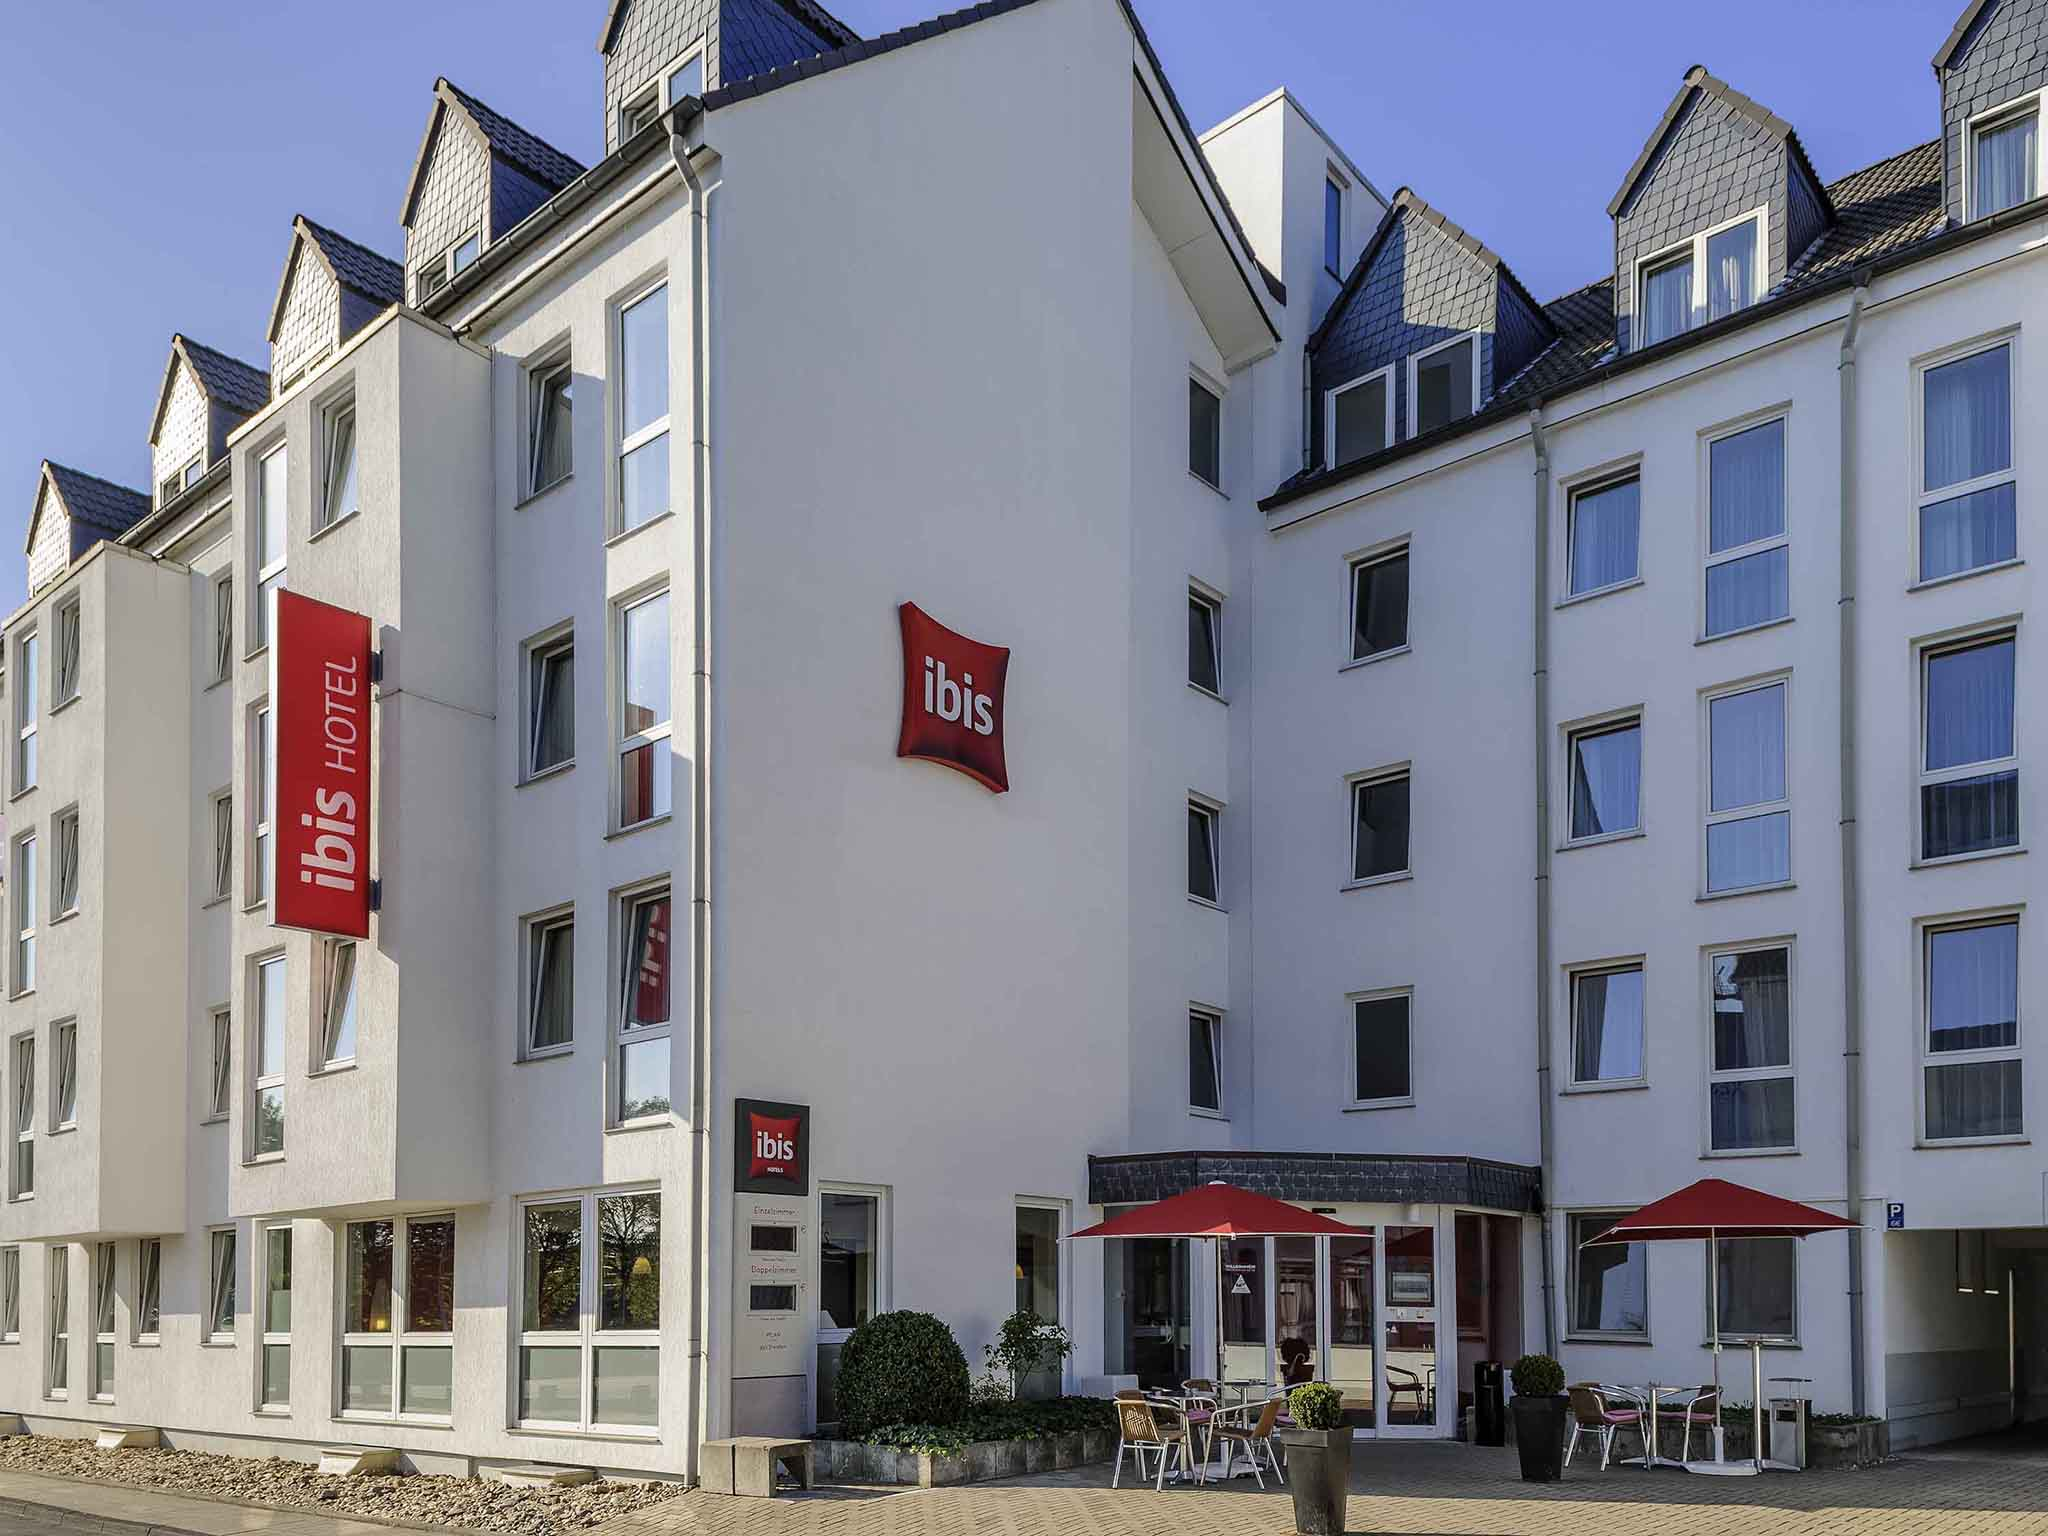 hotel ibis cologne leverkusen book your hotel now. Black Bedroom Furniture Sets. Home Design Ideas